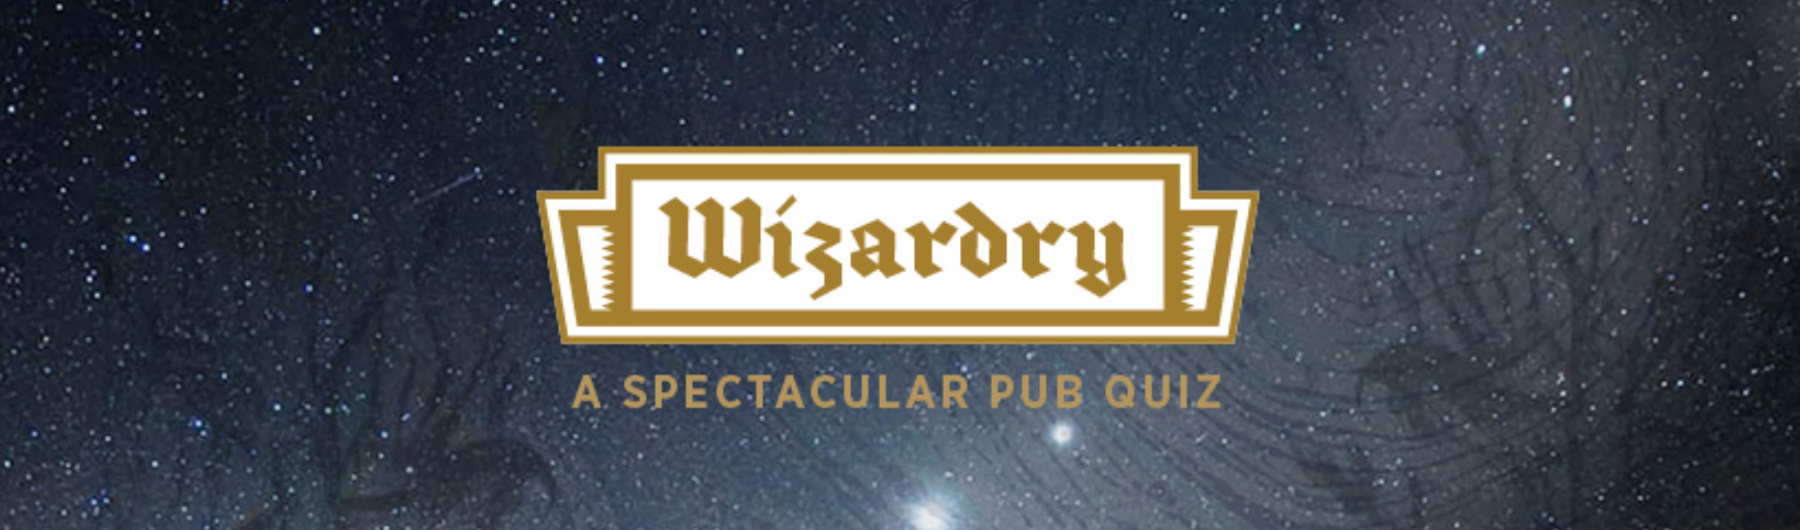 POSTPONED Wizardry Quiz - for the loyal (London) *FESTIVE EDITION*